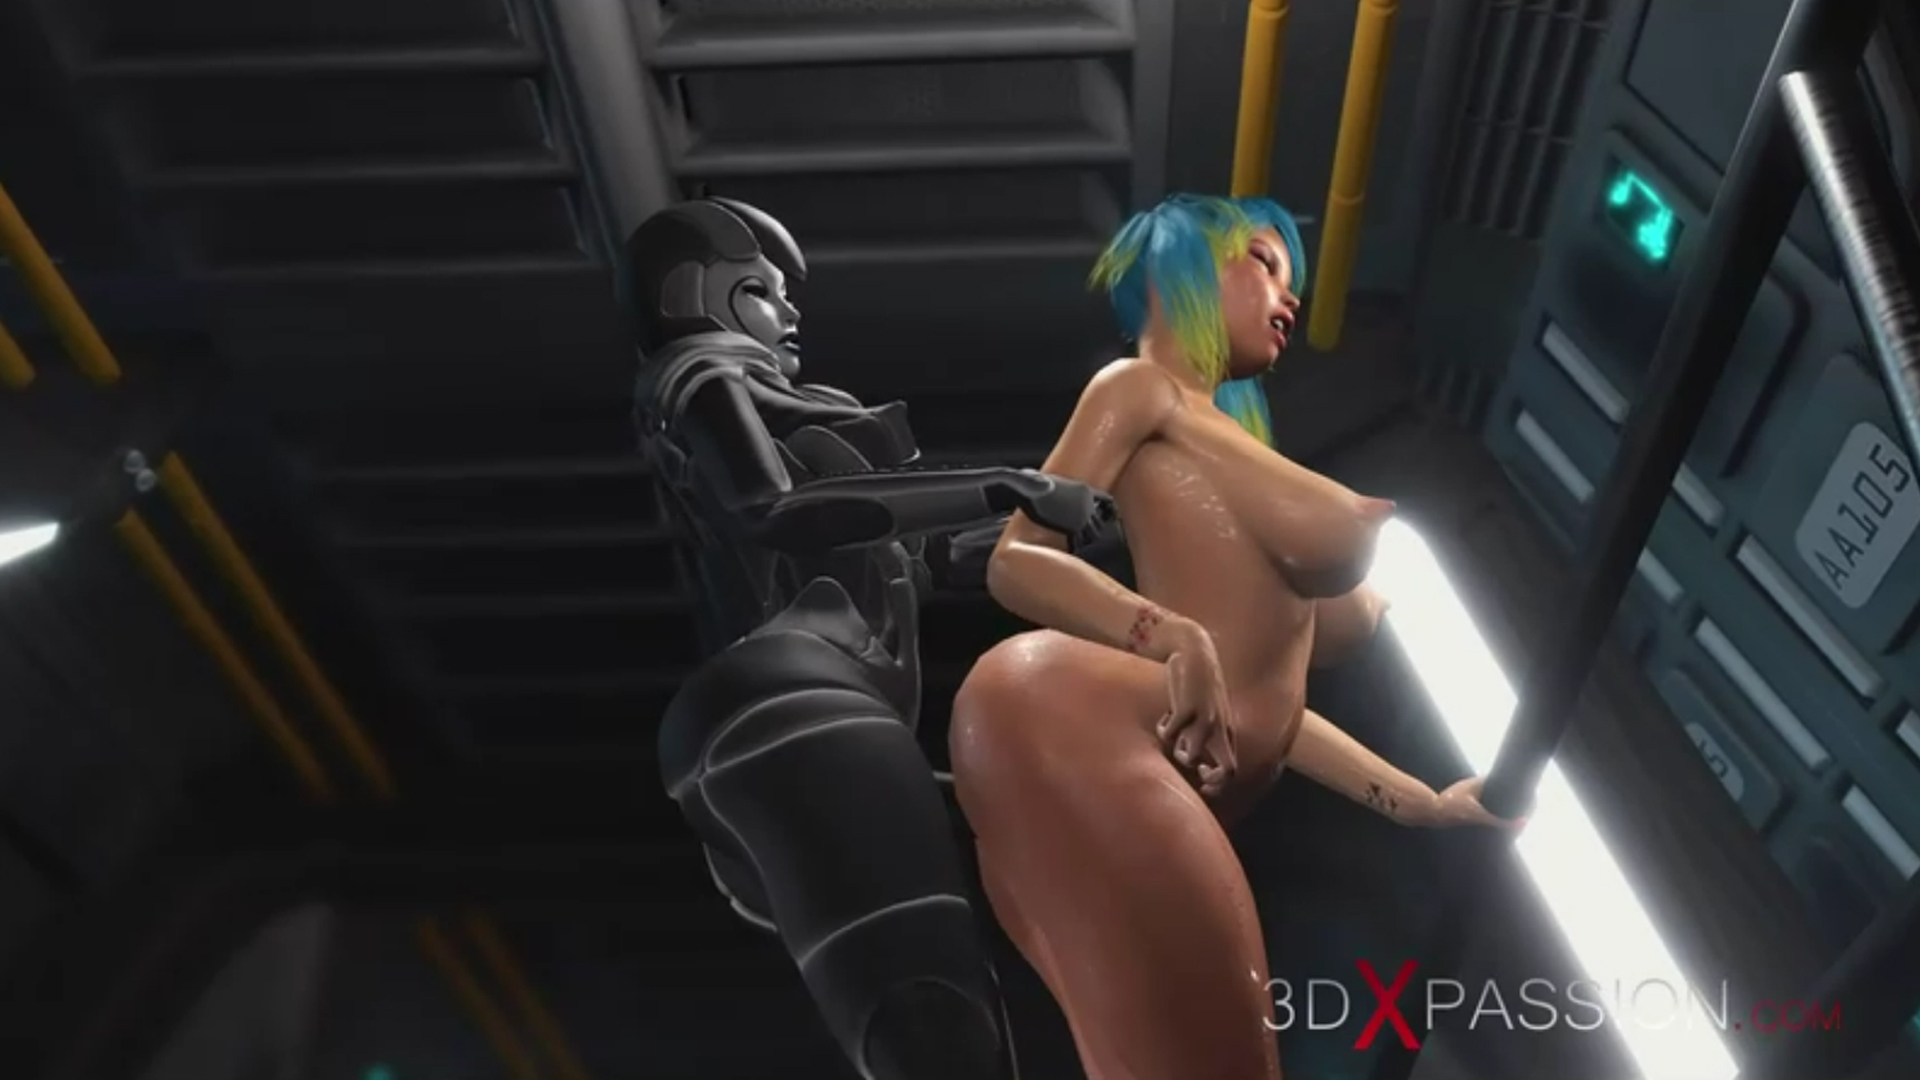 Sci-fi female android fucks horny girl  strapon spaceship